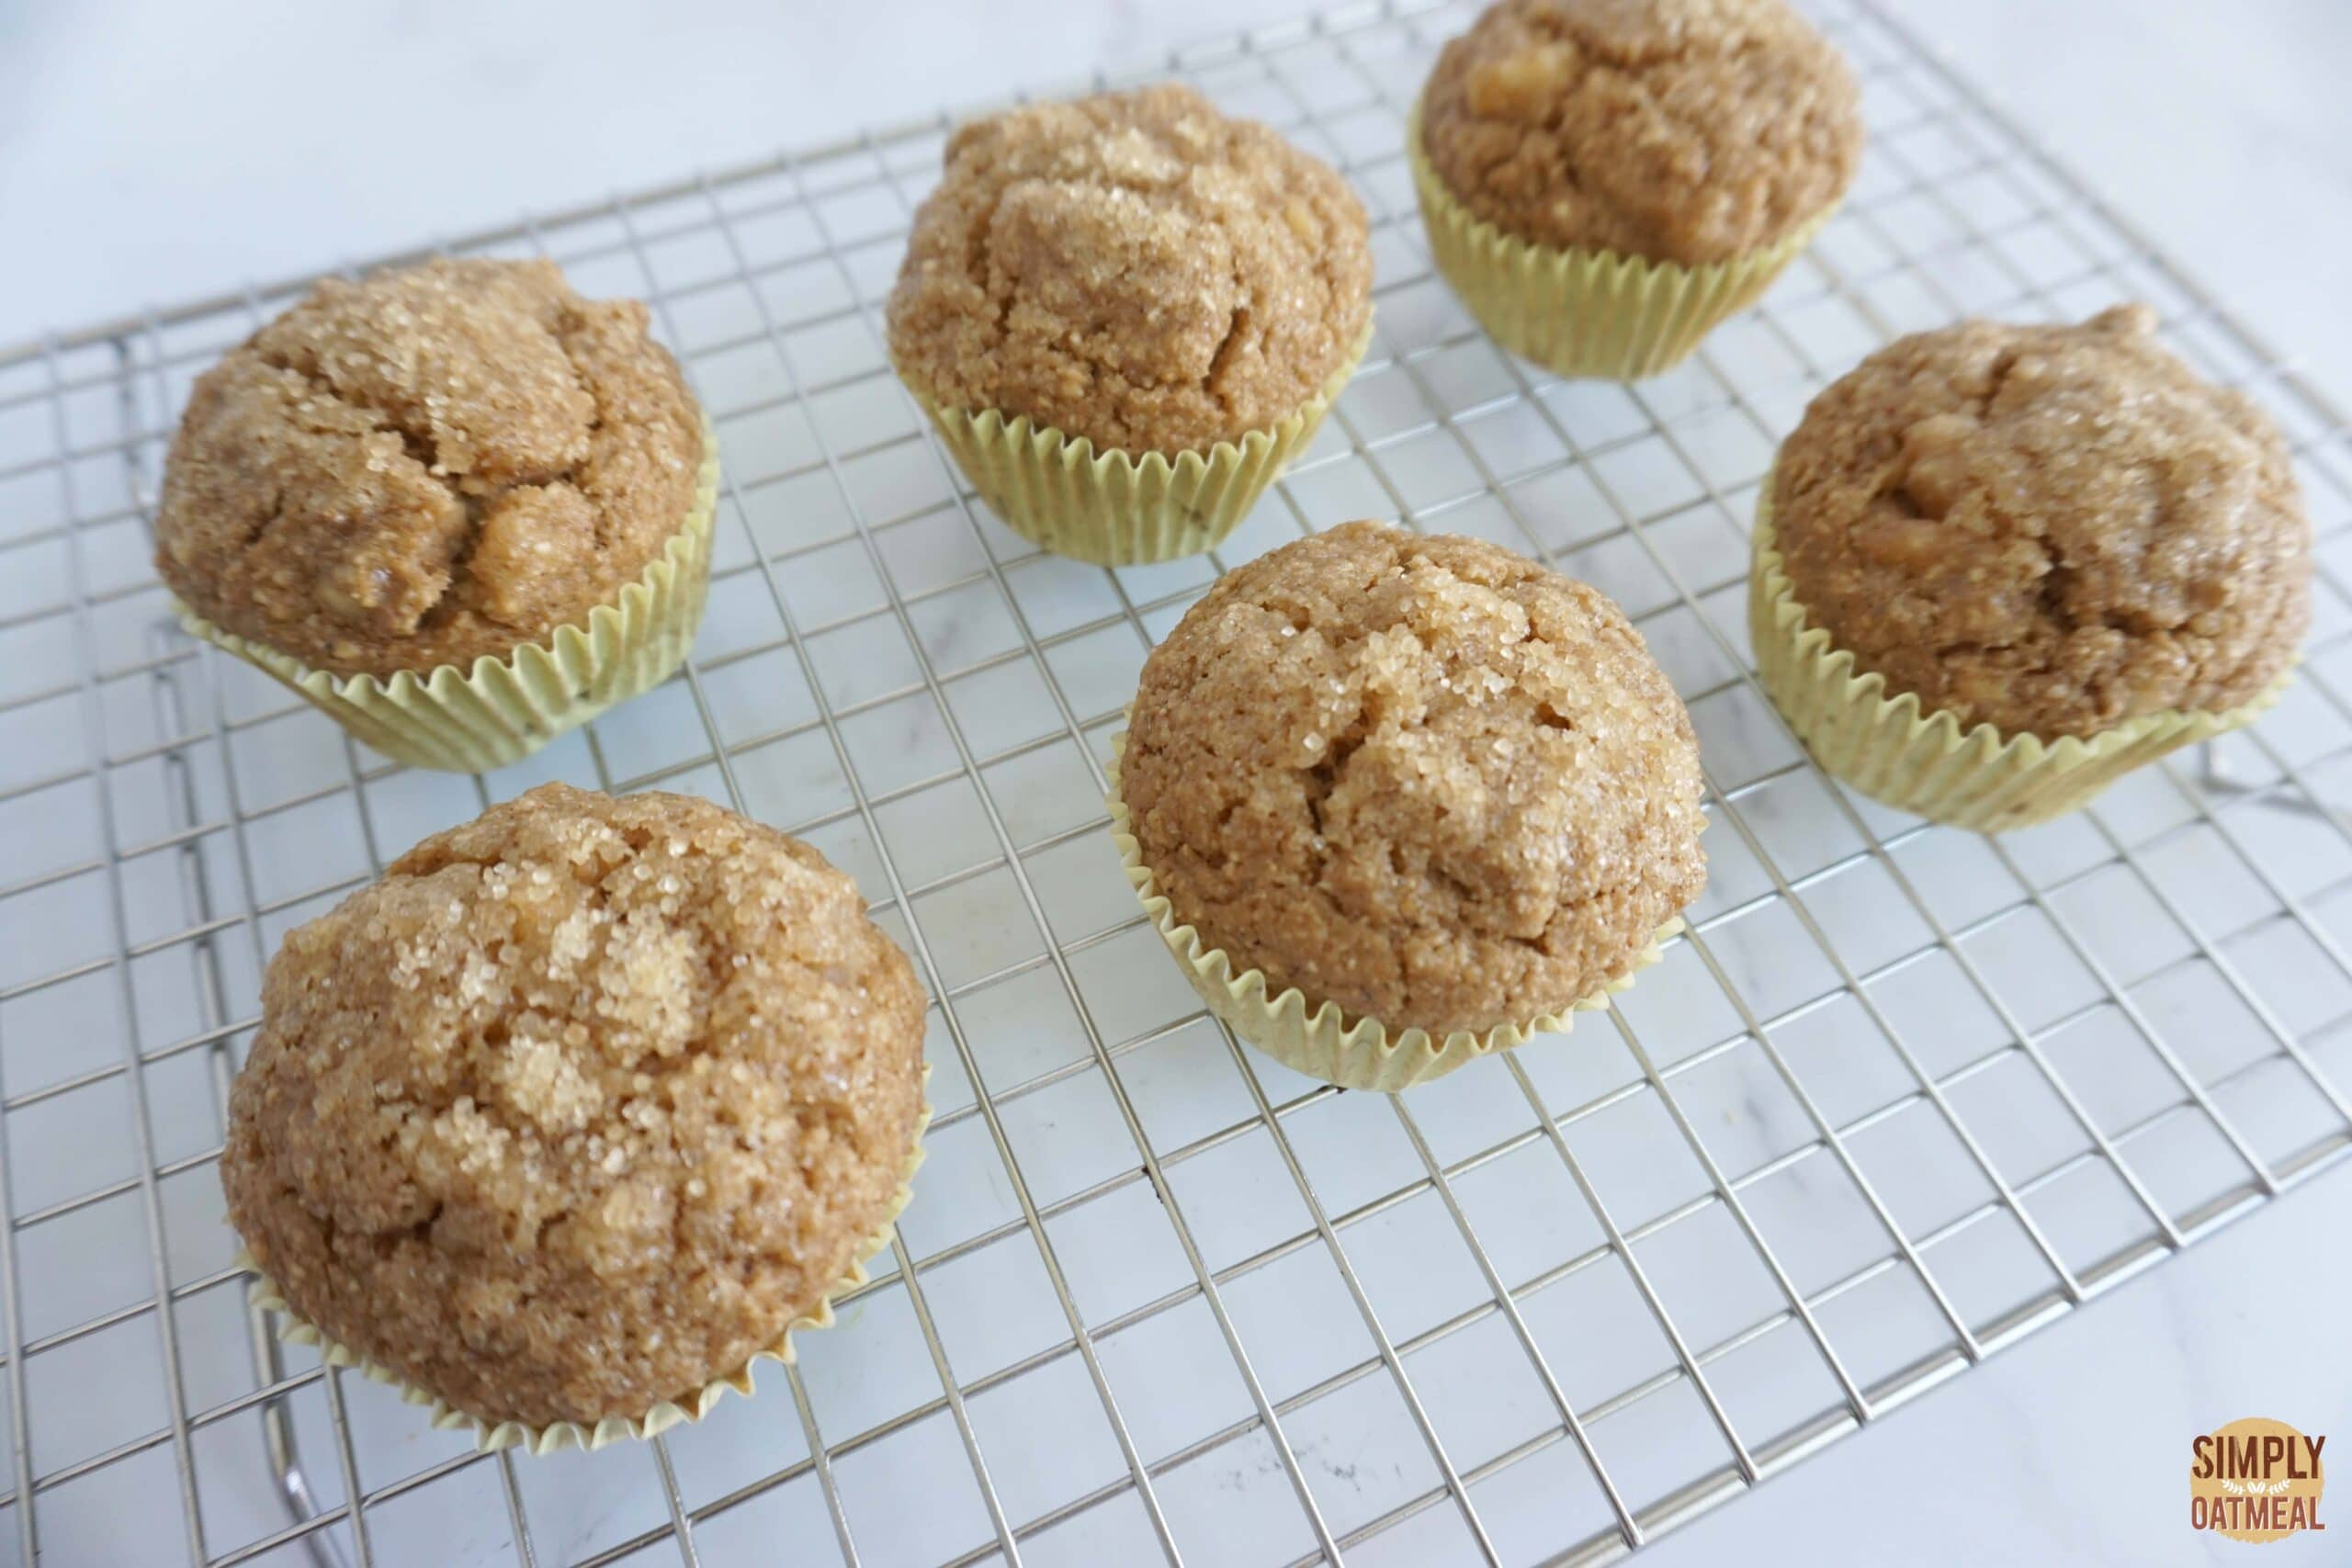 Vegan banana oatmeal muffins cooling on wire rack